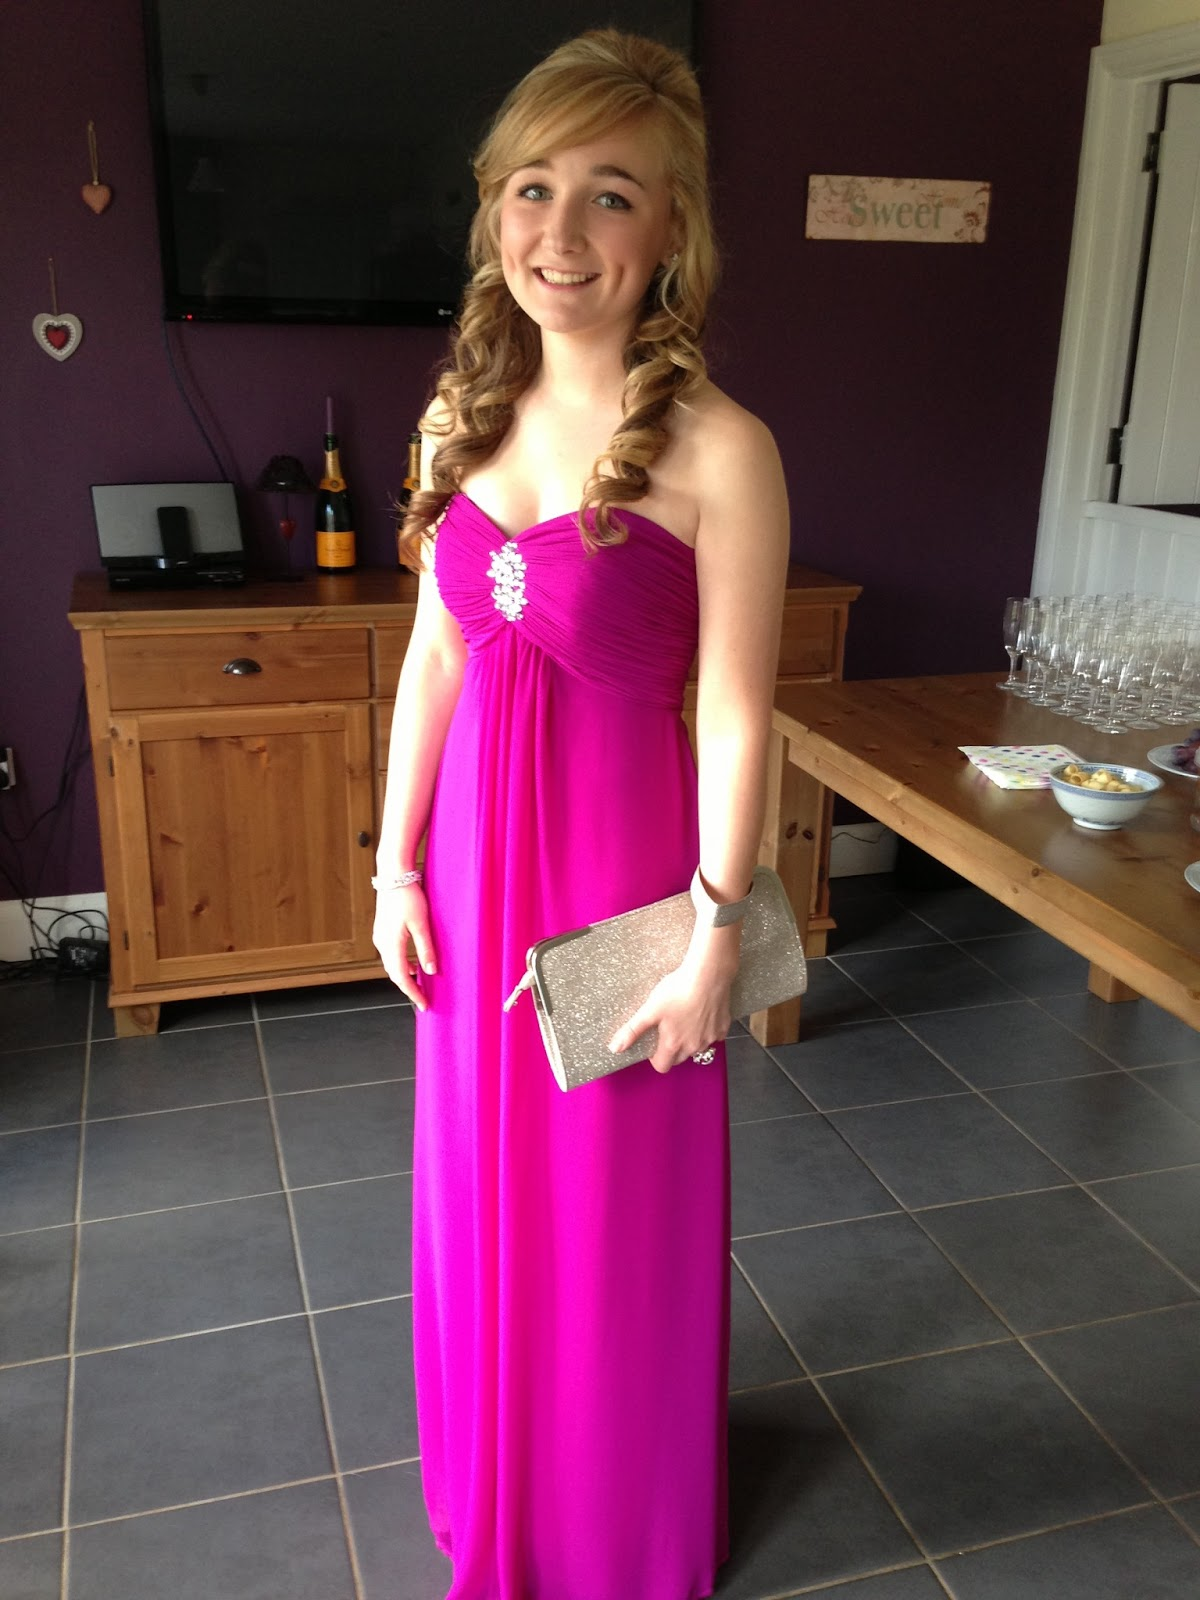 PromFormal(4prom.co.uk) reviews to buy a prom dress? 070